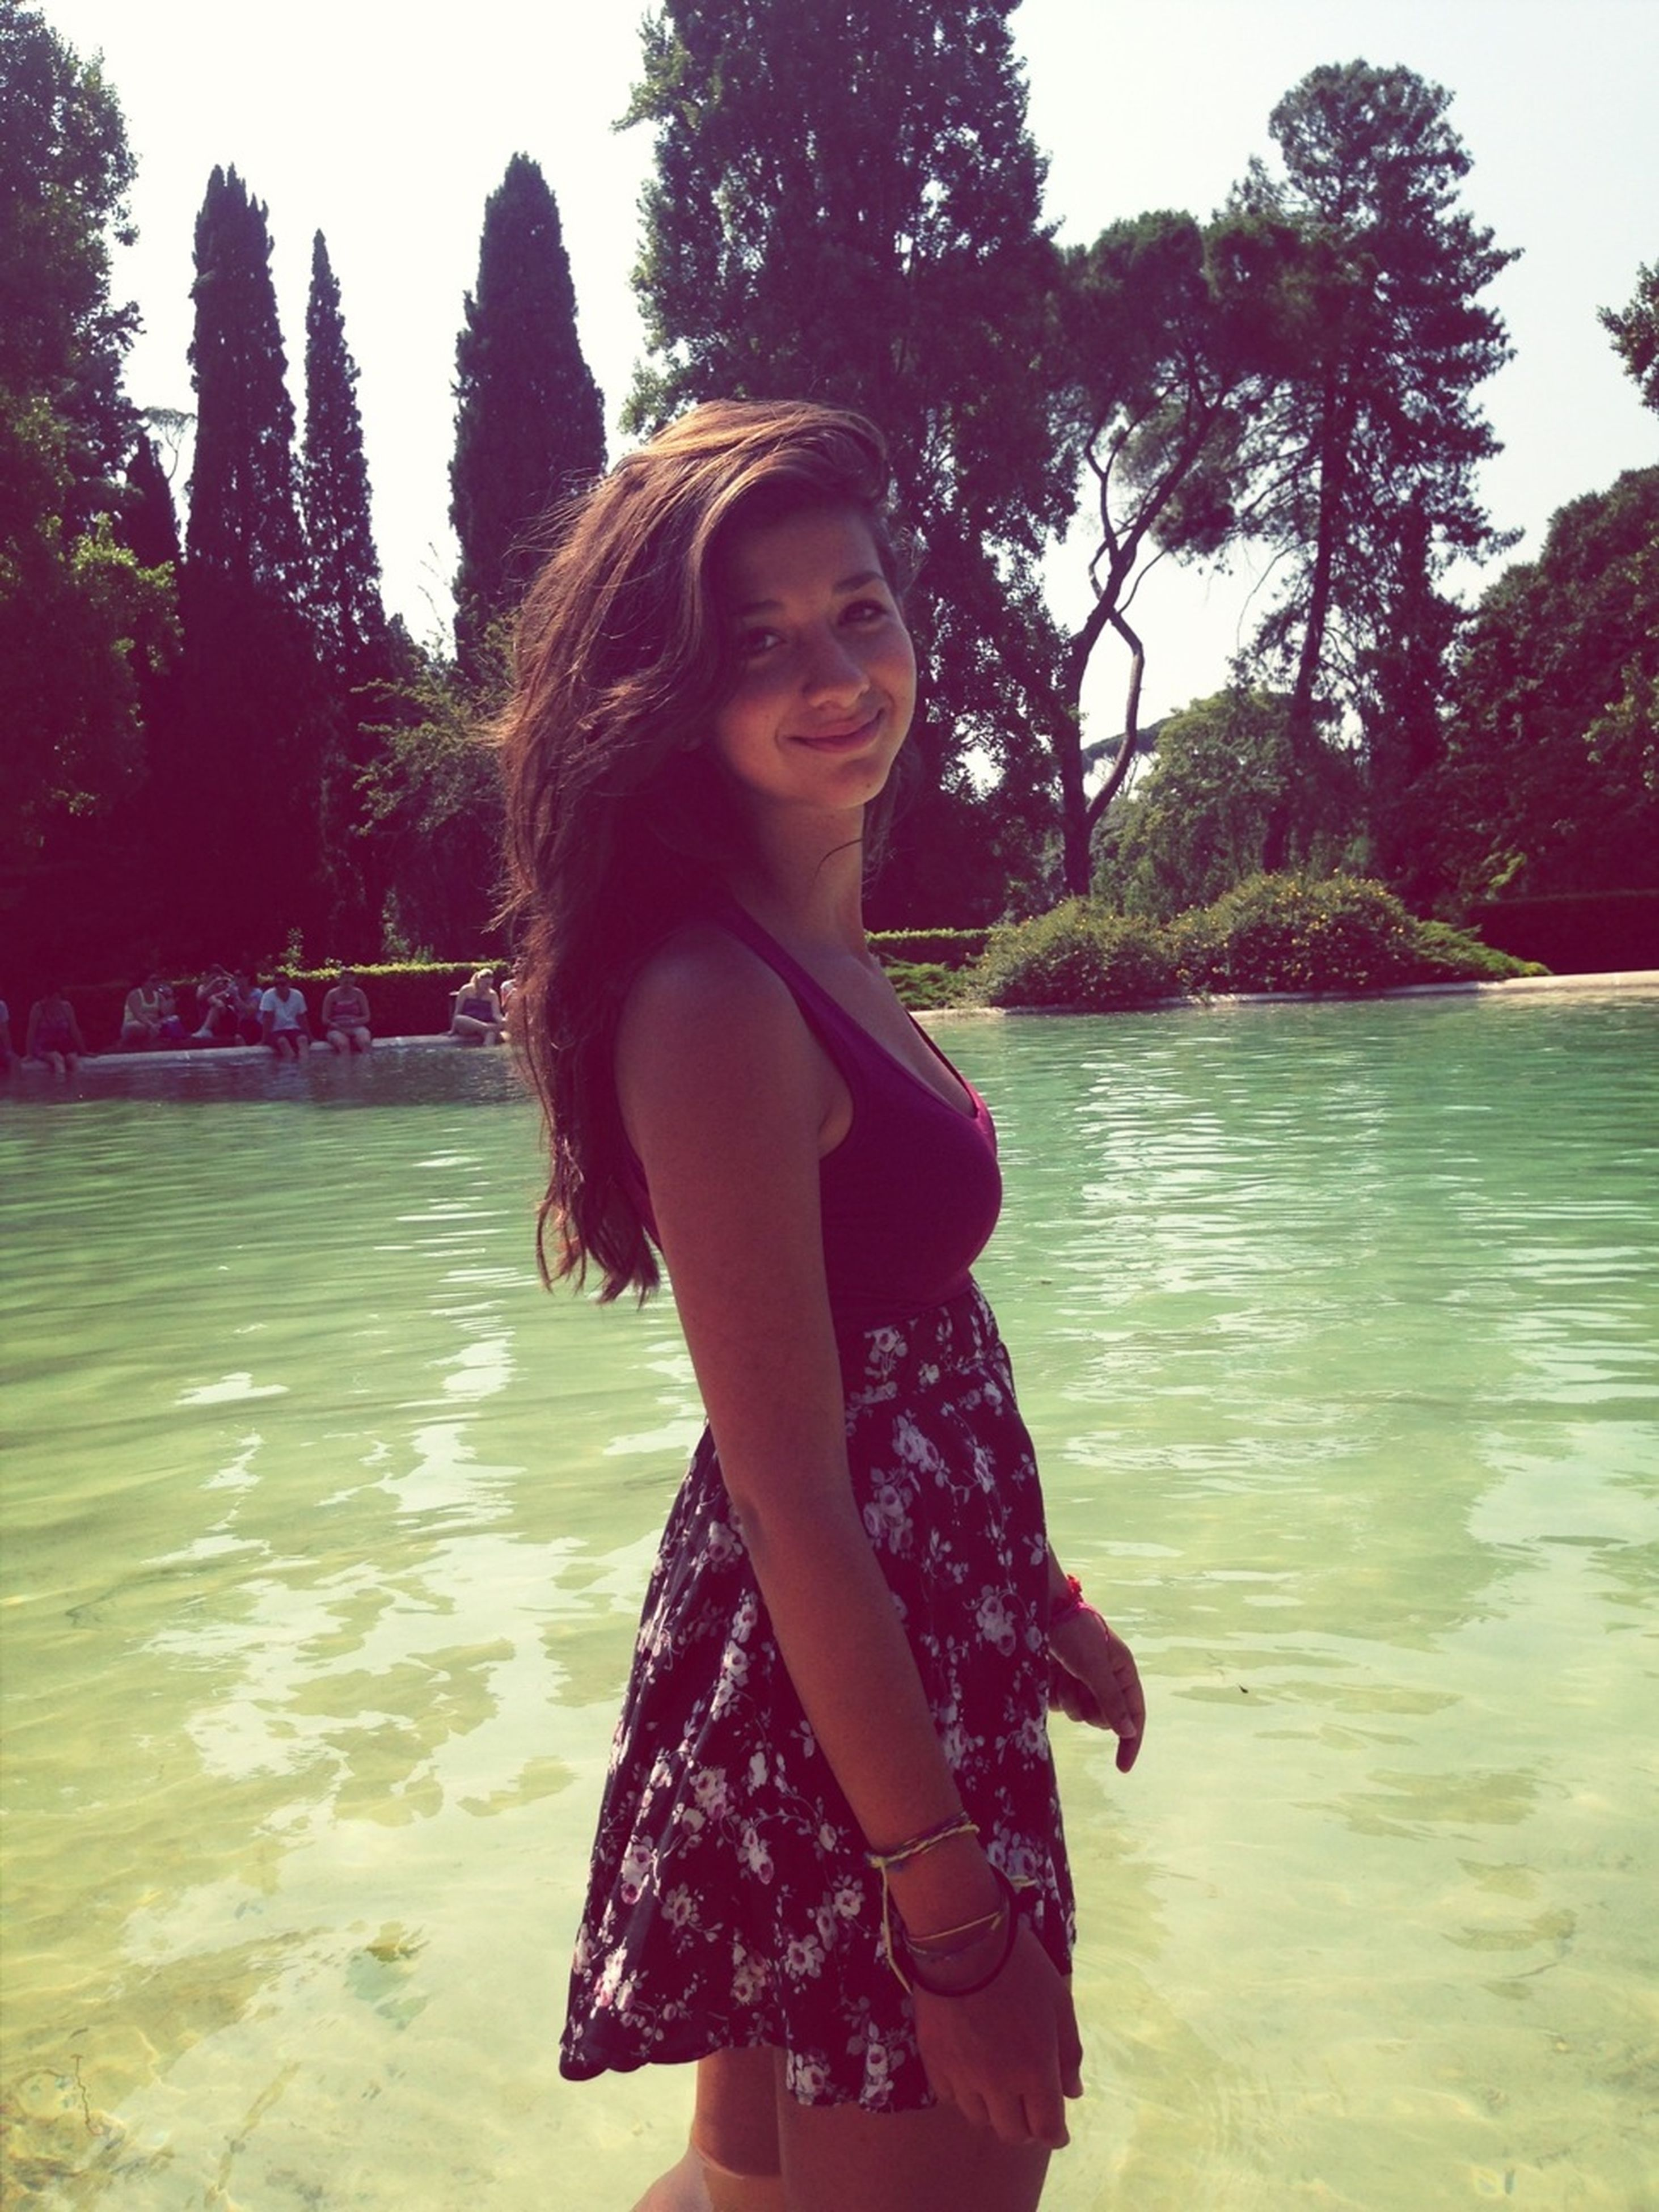 water, young adult, person, tree, lifestyles, young women, casual clothing, leisure activity, looking at camera, portrait, standing, front view, long hair, three quarter length, smiling, lake, river